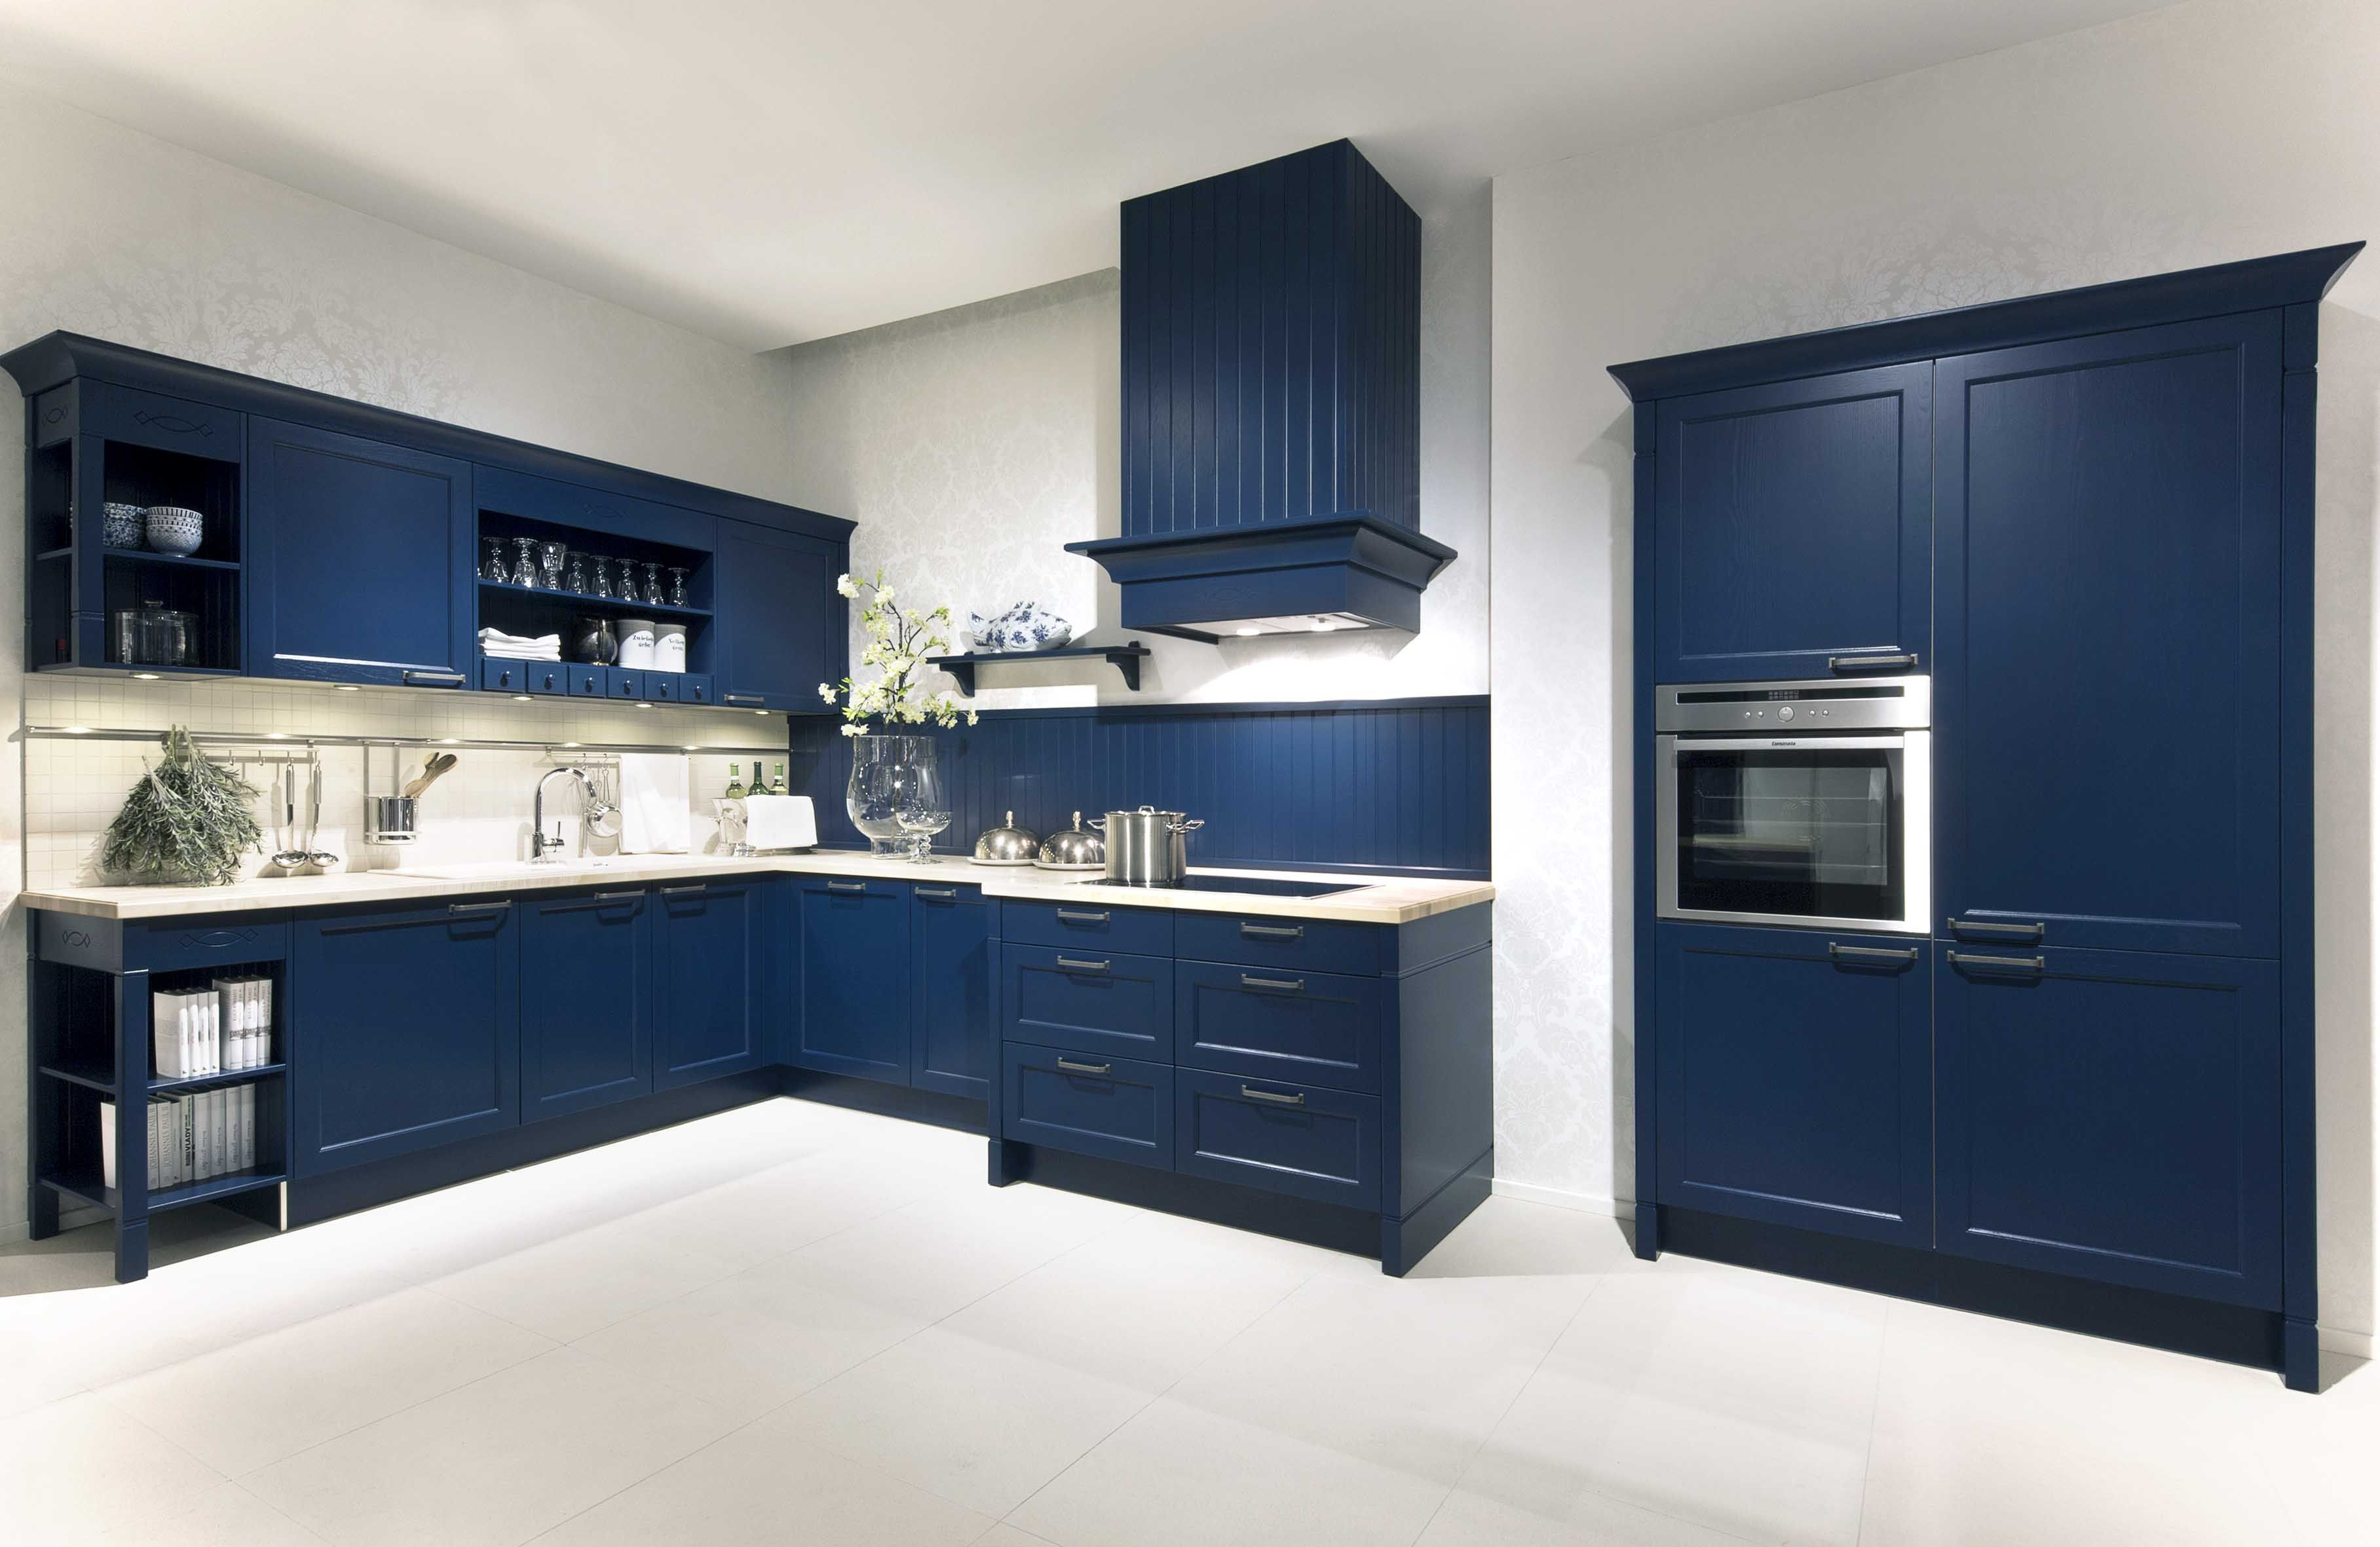 Häcker Küchen Jobs A Classic Door The Bristol In Midnight Blue With Charm And Style